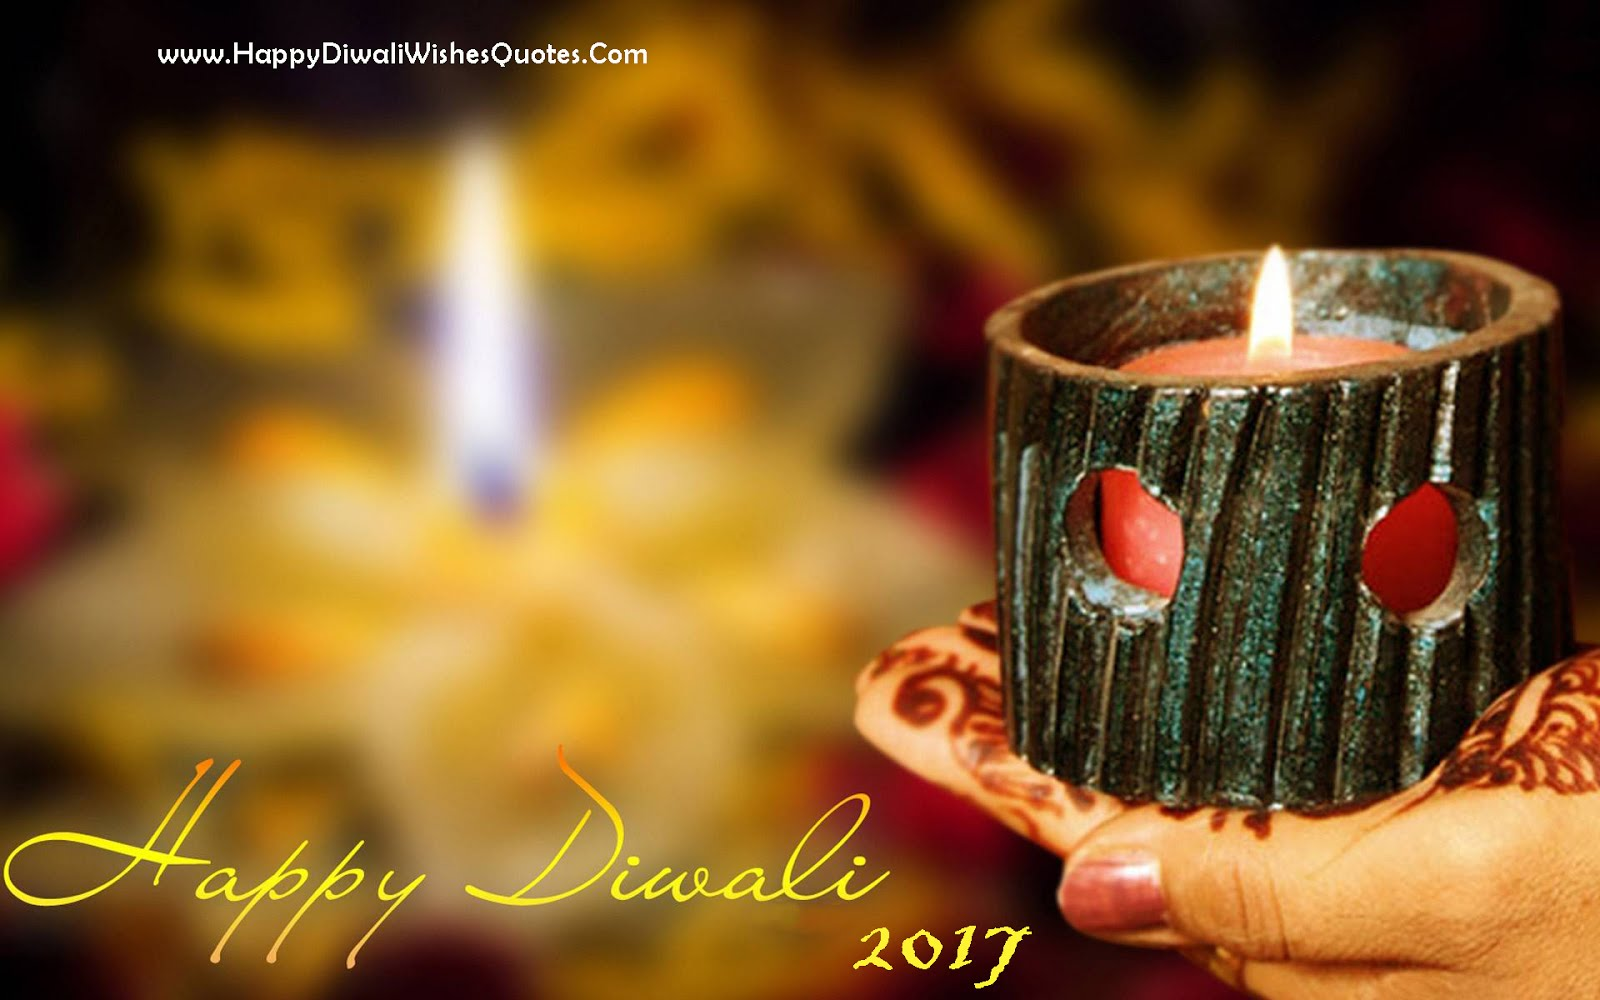 happy diwali 2017 wallpapers images download - happy diwali wishes